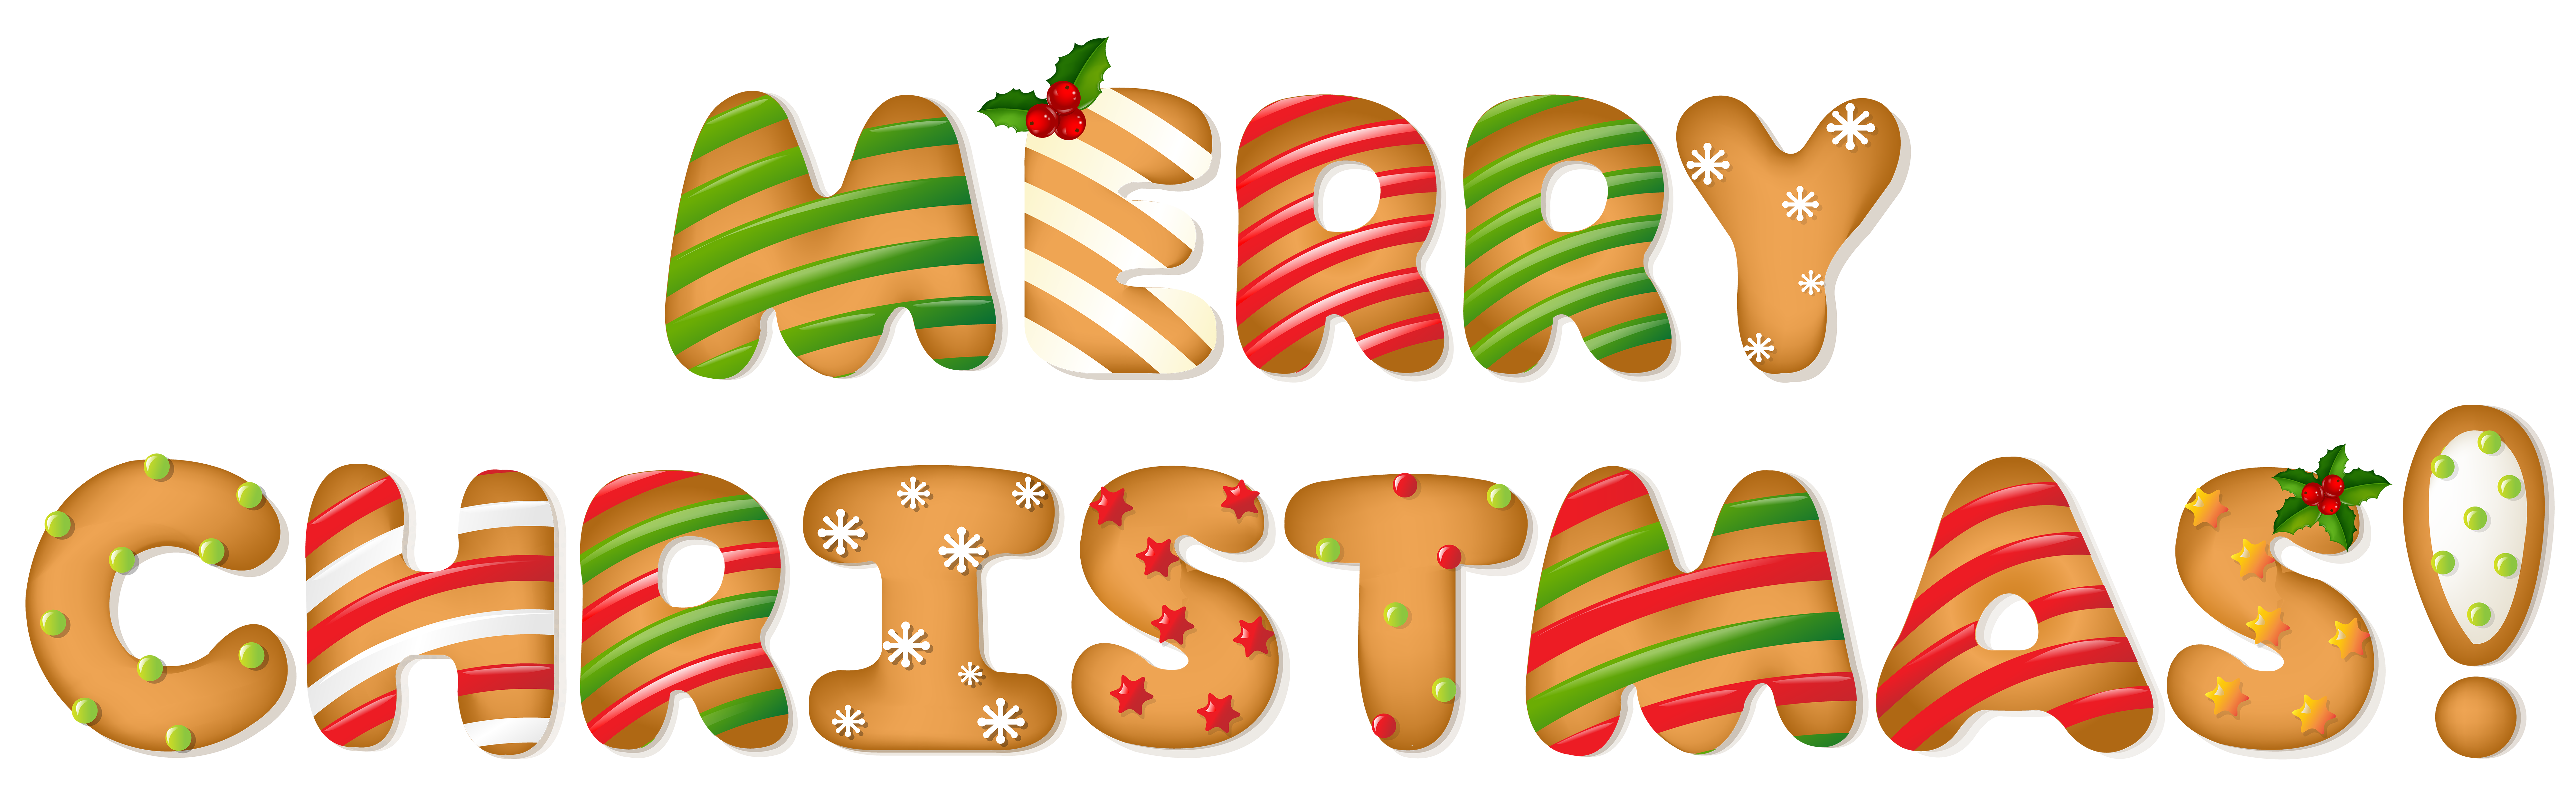 Christmas clipart banners jpg black and white stock 28+ Collection of Merry Christmas Banner Clipart | High quality ... jpg black and white stock